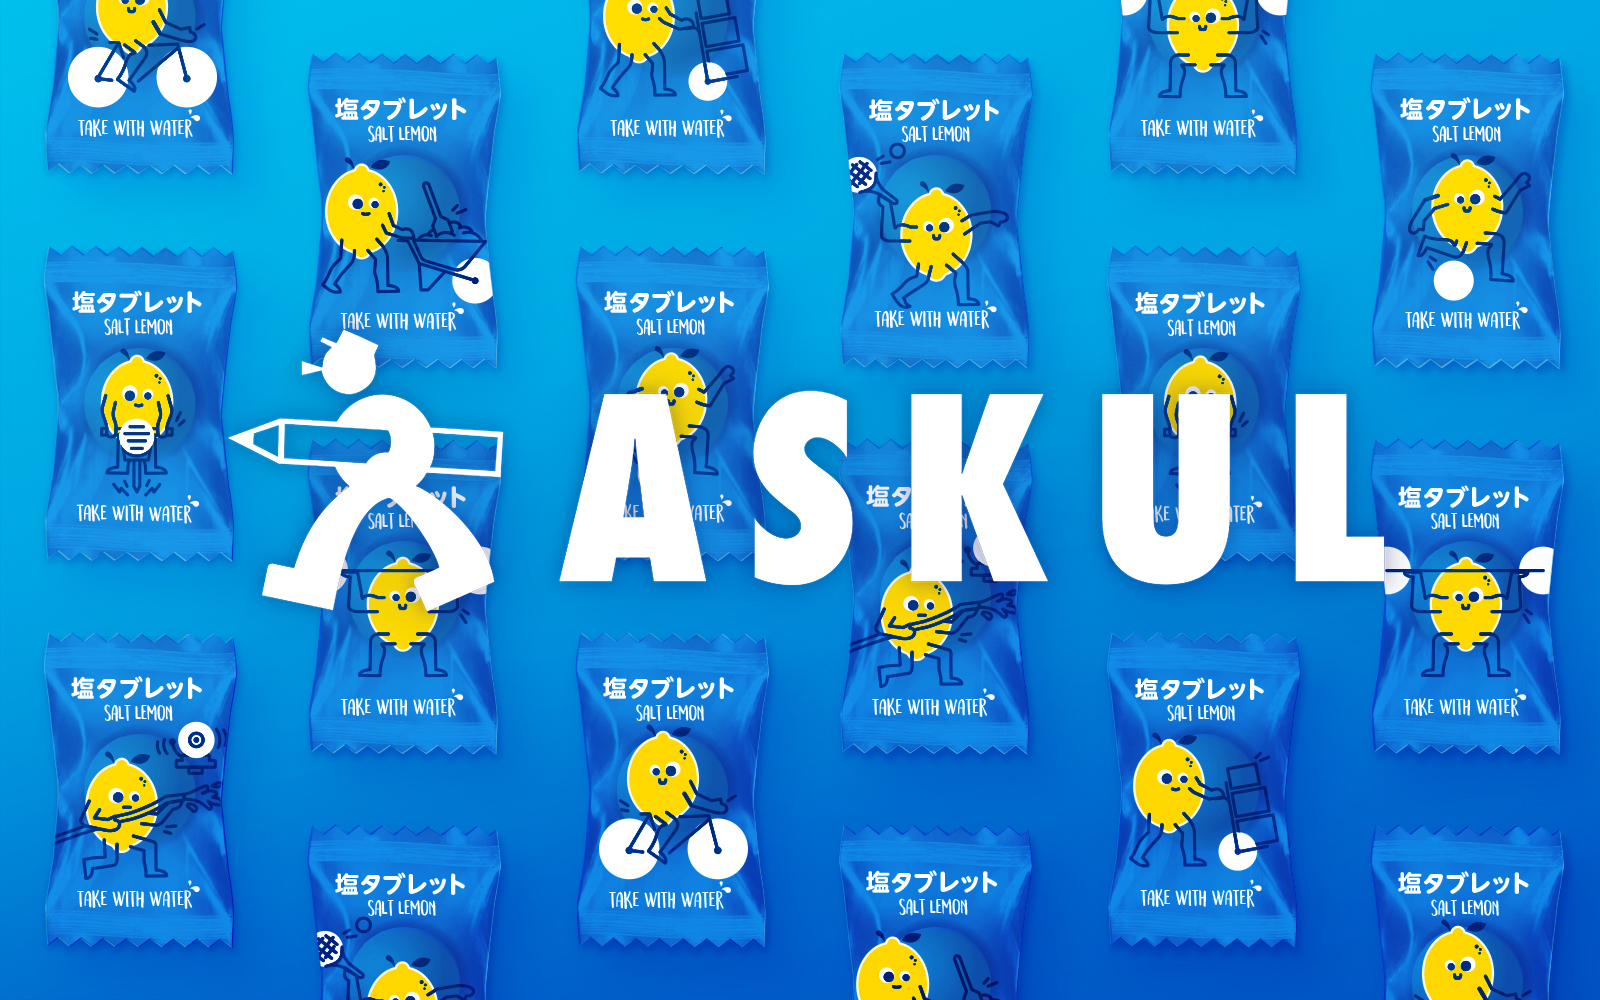 Cute Japanese packaging design by Pemberton & Whitefoord LLP for retailer Seicomart featuring lemon illustration characters playing sport and working. Salt tablets individually wrapped in blue packets. The packaging features Japanese text and English text.